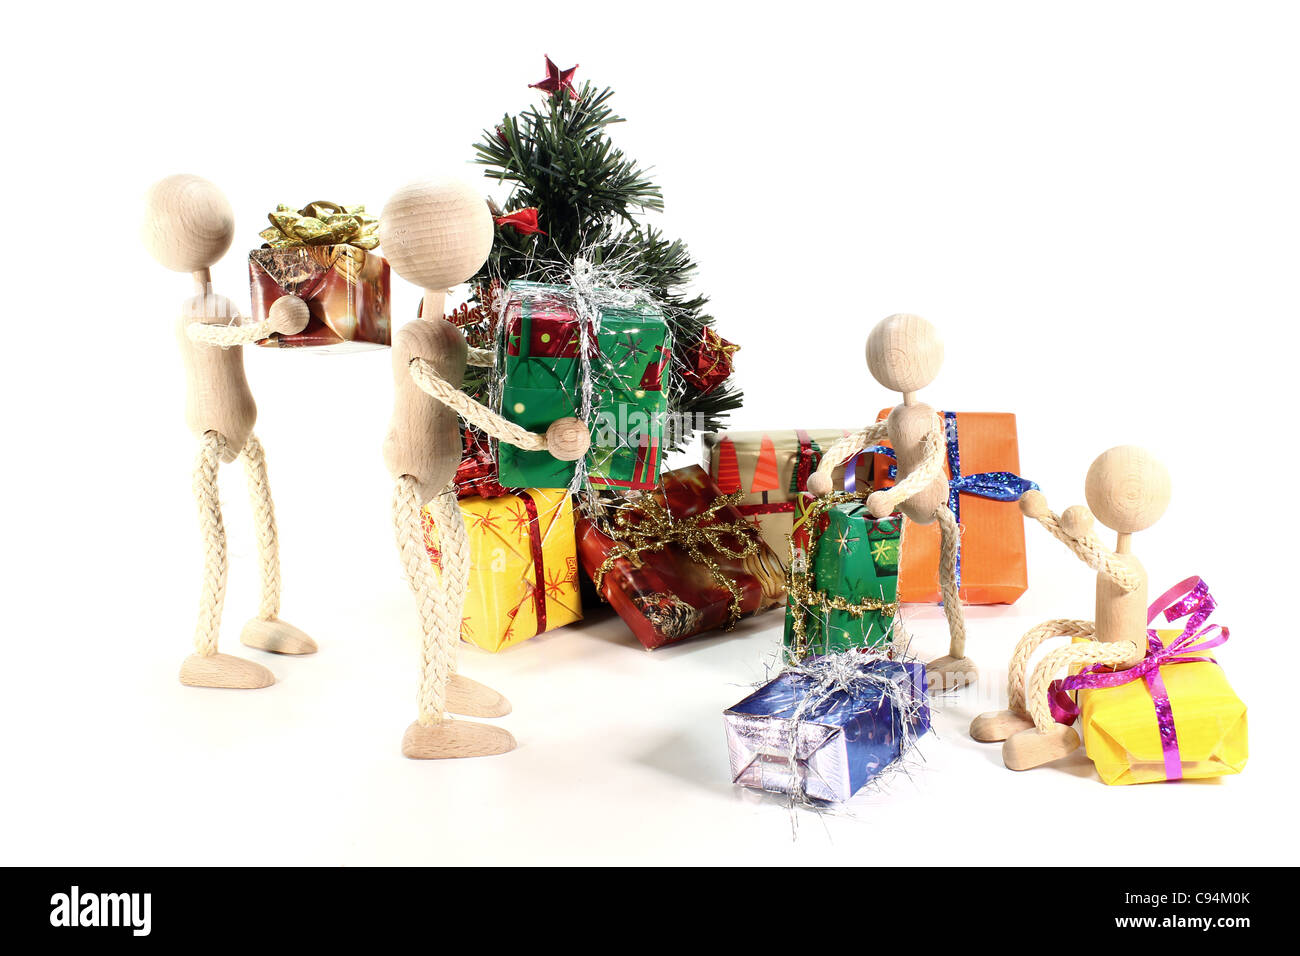 Wooden Dolls in the nice mess and Christmas tree with colorful gifts - Stock Image